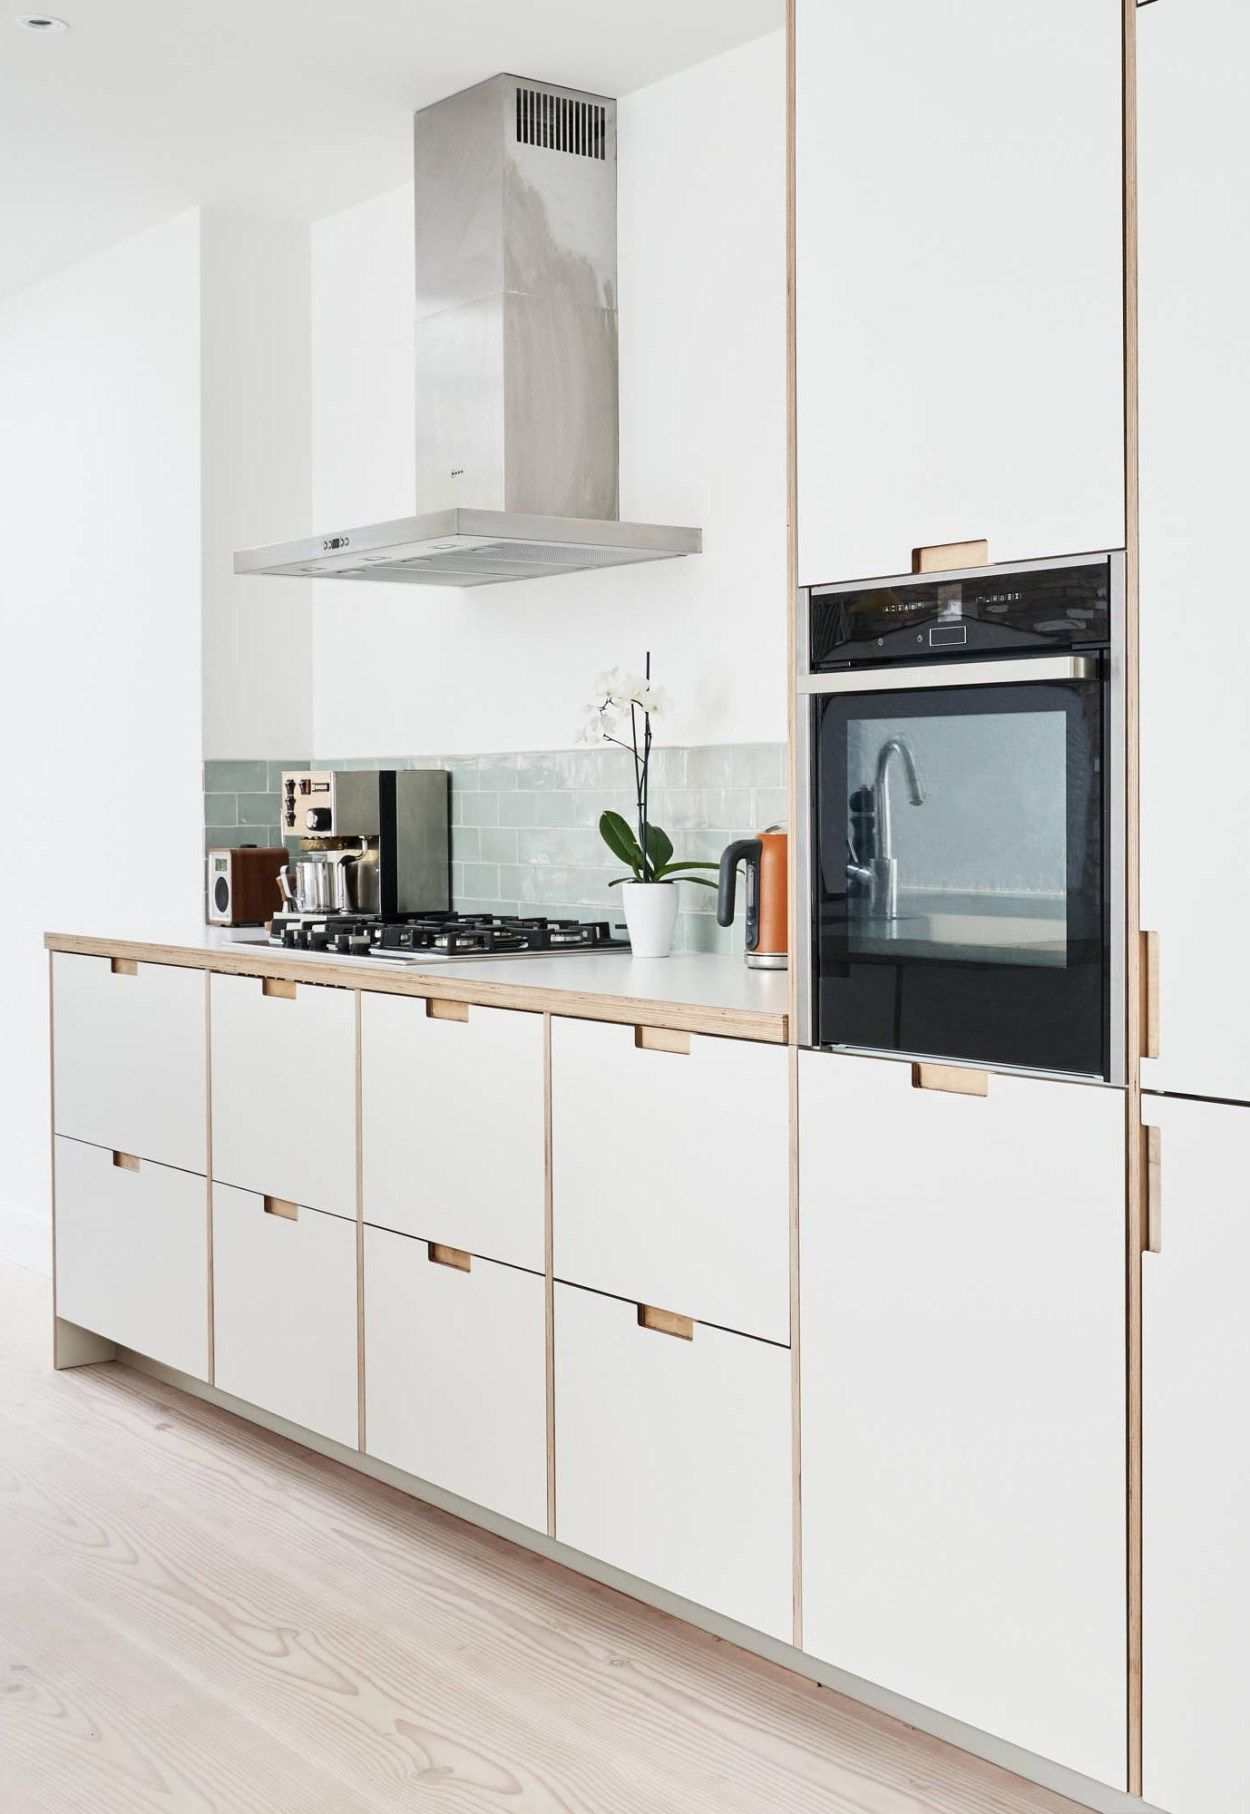 Cuisine Sur Mesure Ikea six brands to help you customise ikea kitchen cabinets